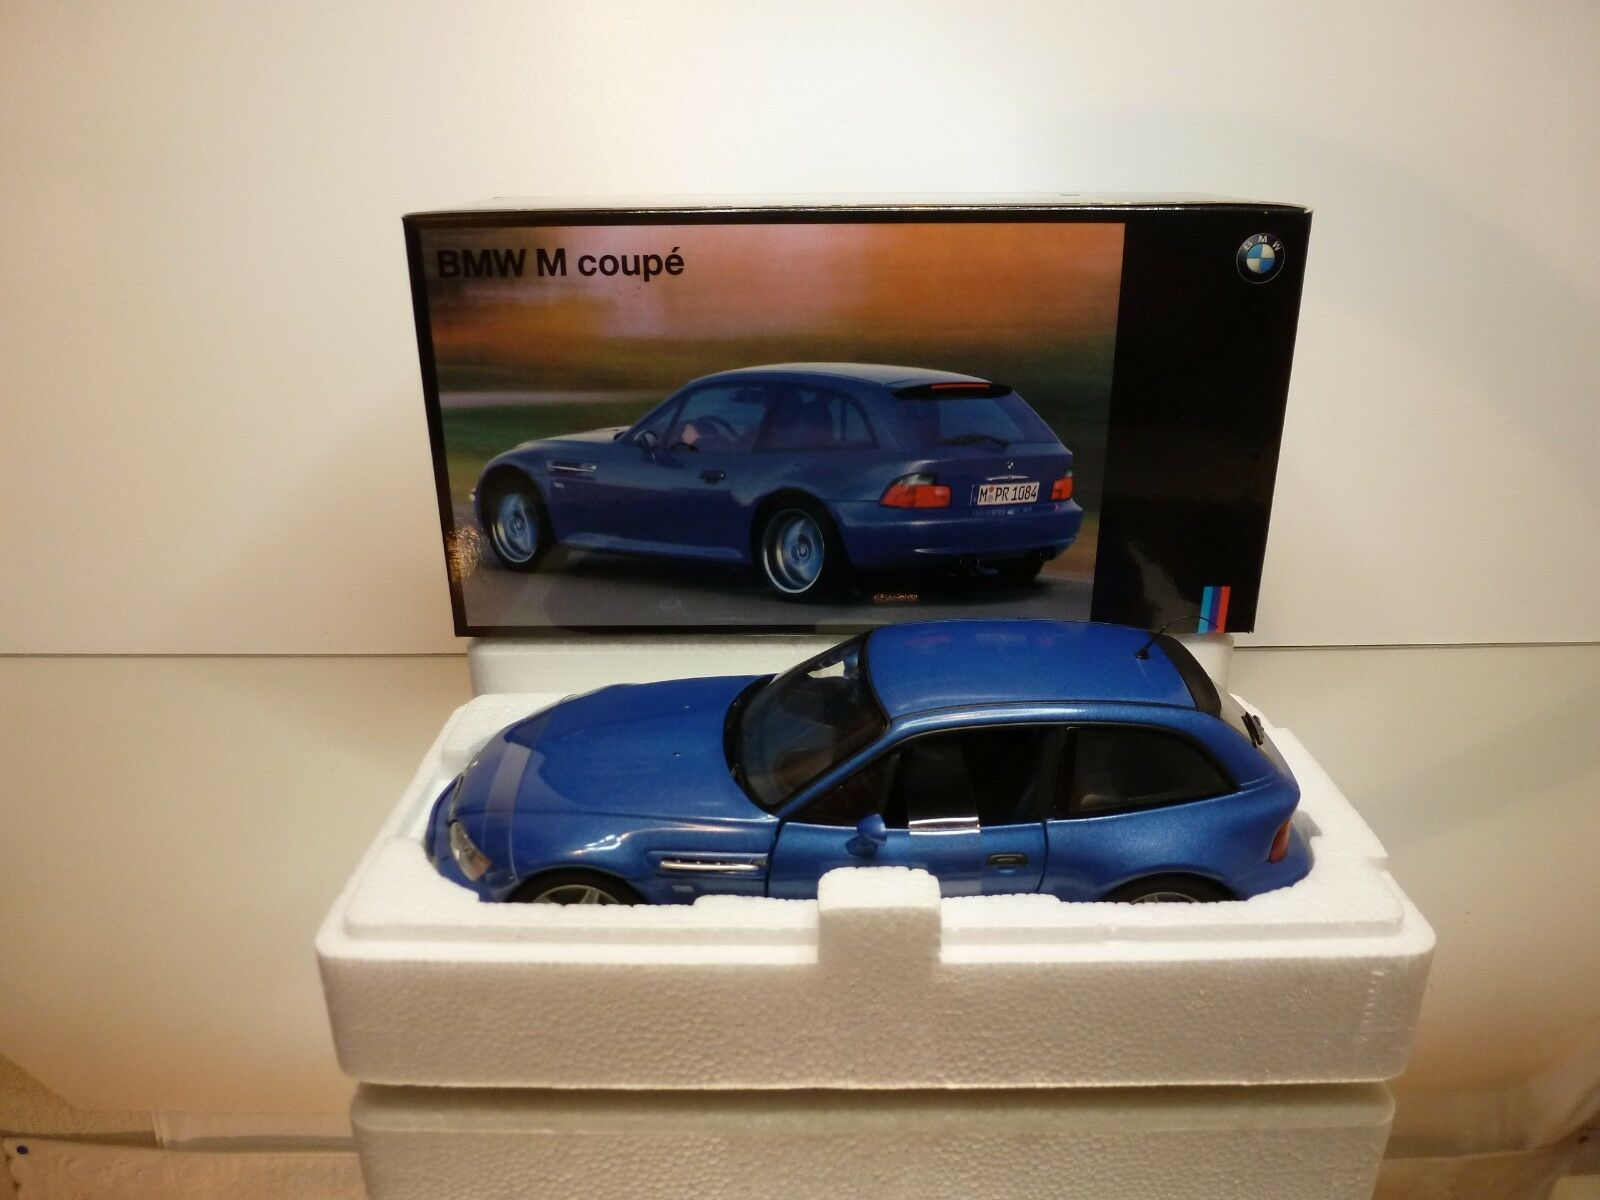 UT MODELS BMW M COUPE E36/8S - blu  METALLIC 1:18 RARE - EXCELLENT IN BOX